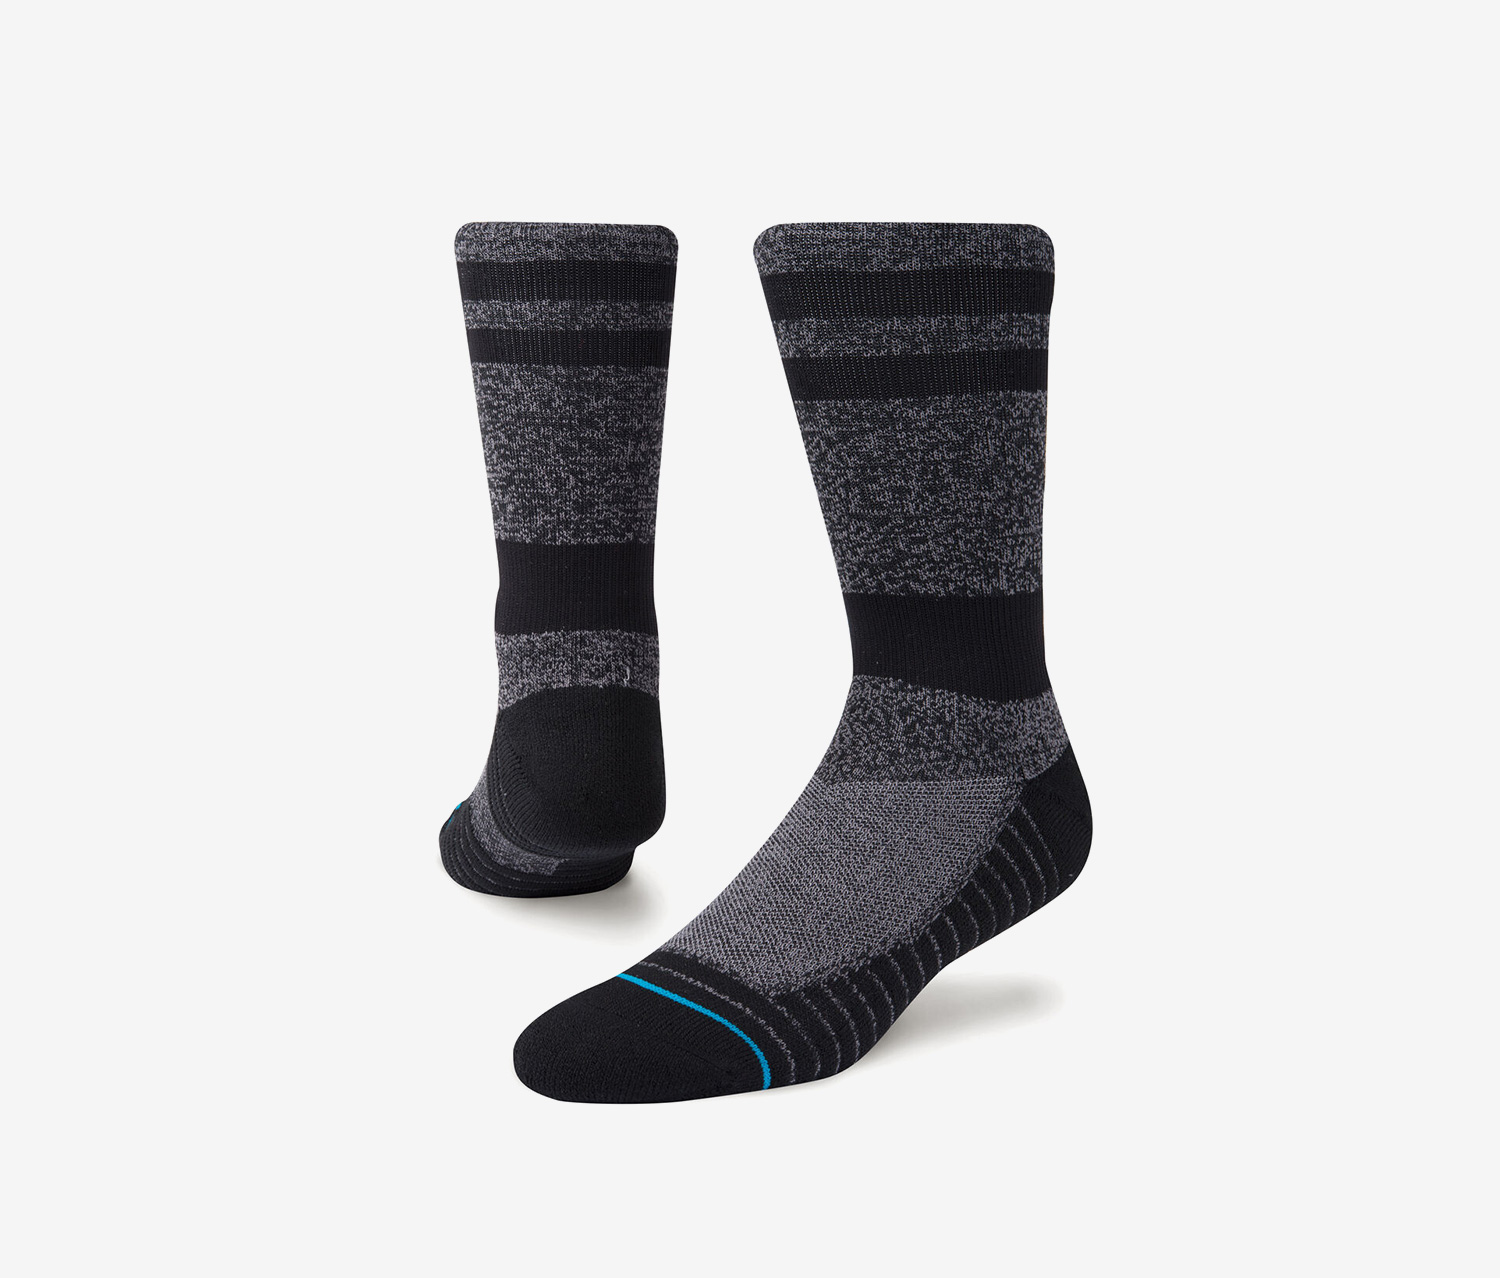 Men's Training Crew Socks, Black